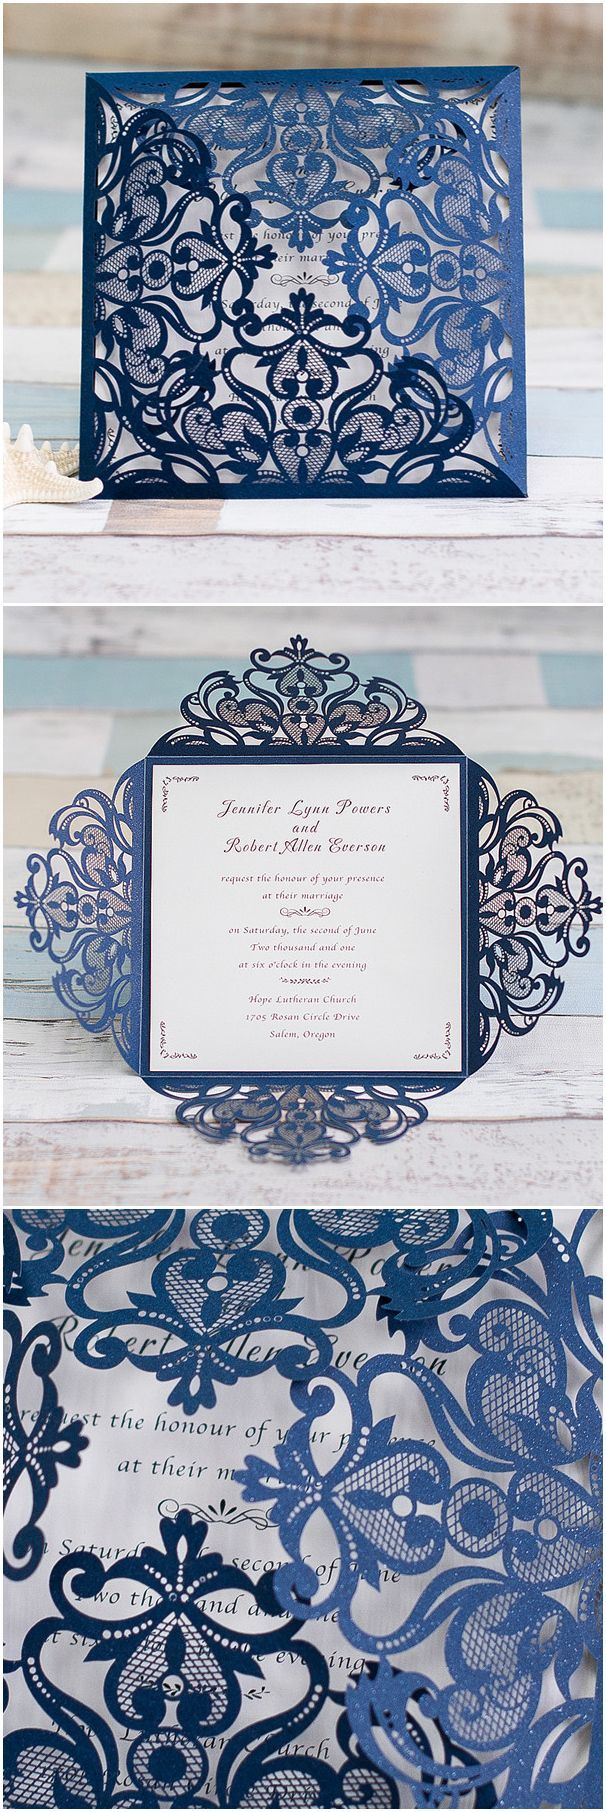 zazzle wedding invitations promo code%0A Navy Blue Laser Cut Elegant Wedding Invitations See how to write good wedding  invitation  http